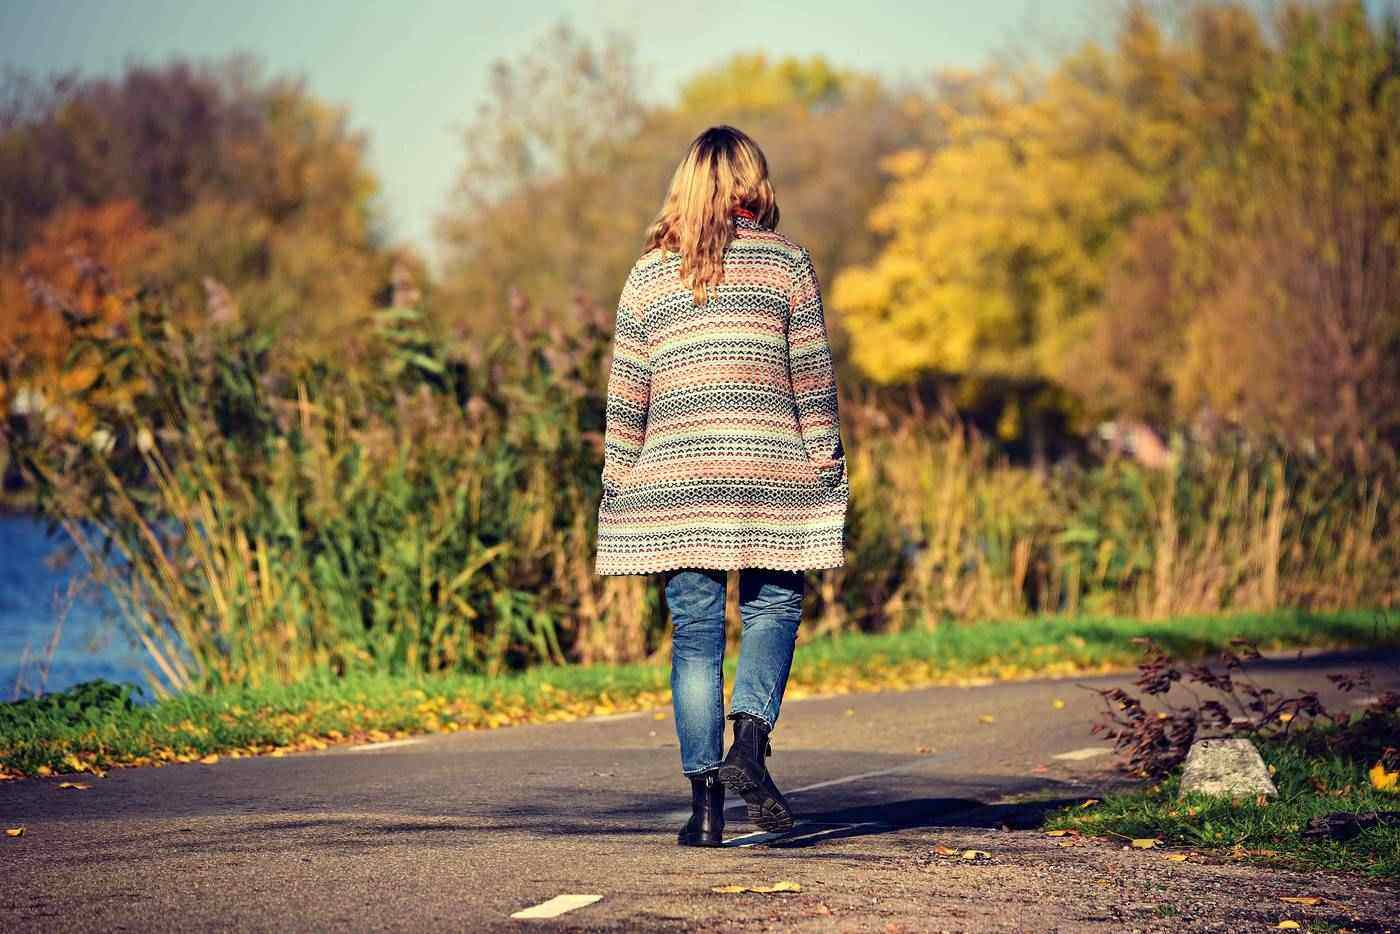 Home.fit social-distancing-woman-walking 5 Questions to Ask Yourself Each Day